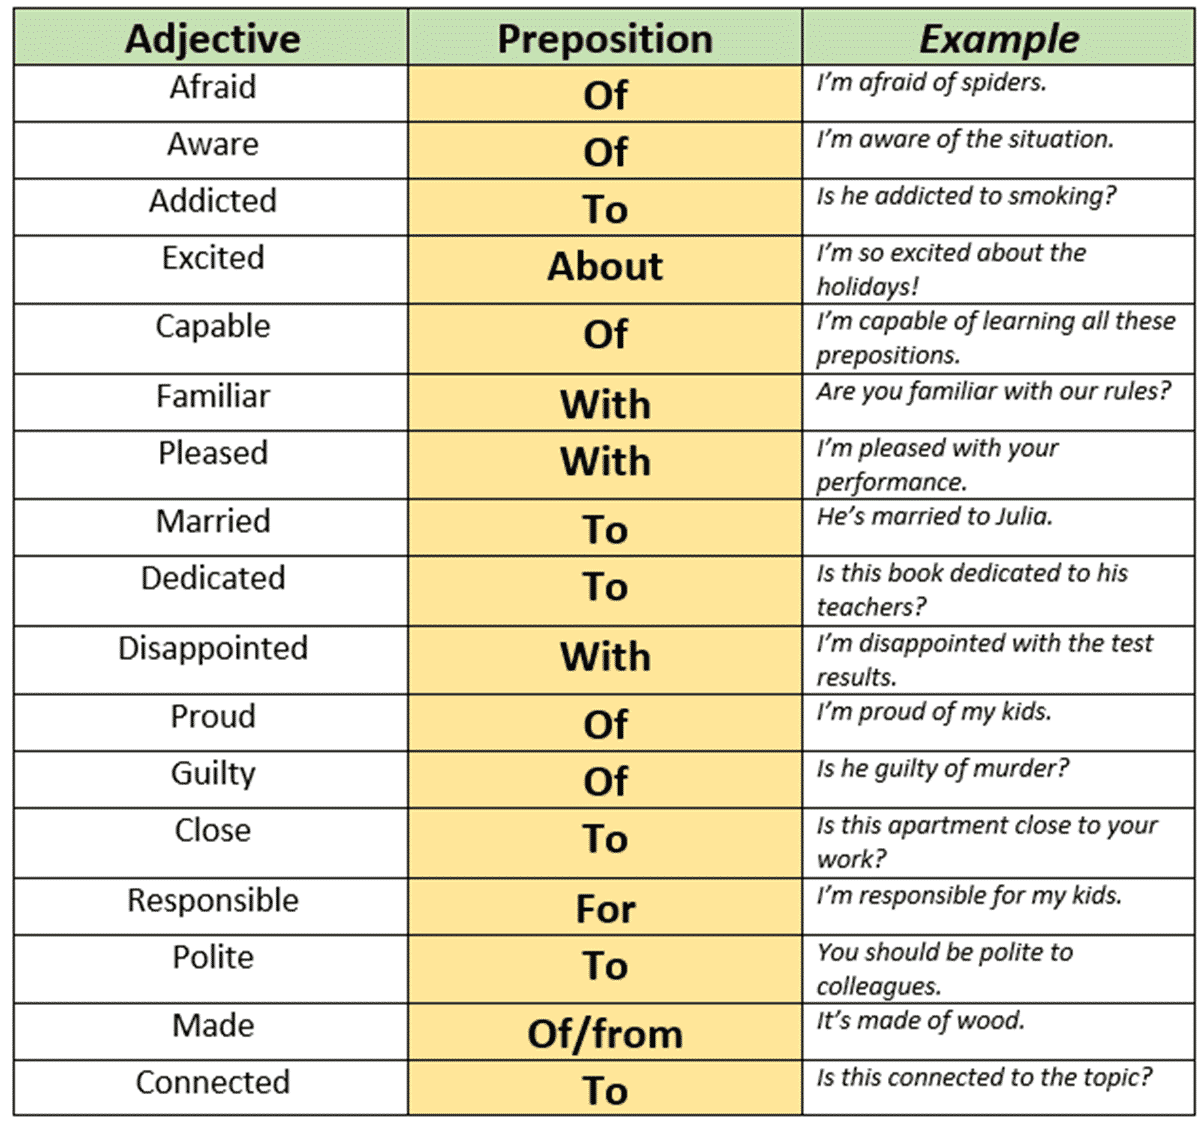 55 Useful Prepositions And Adjectives Combination With